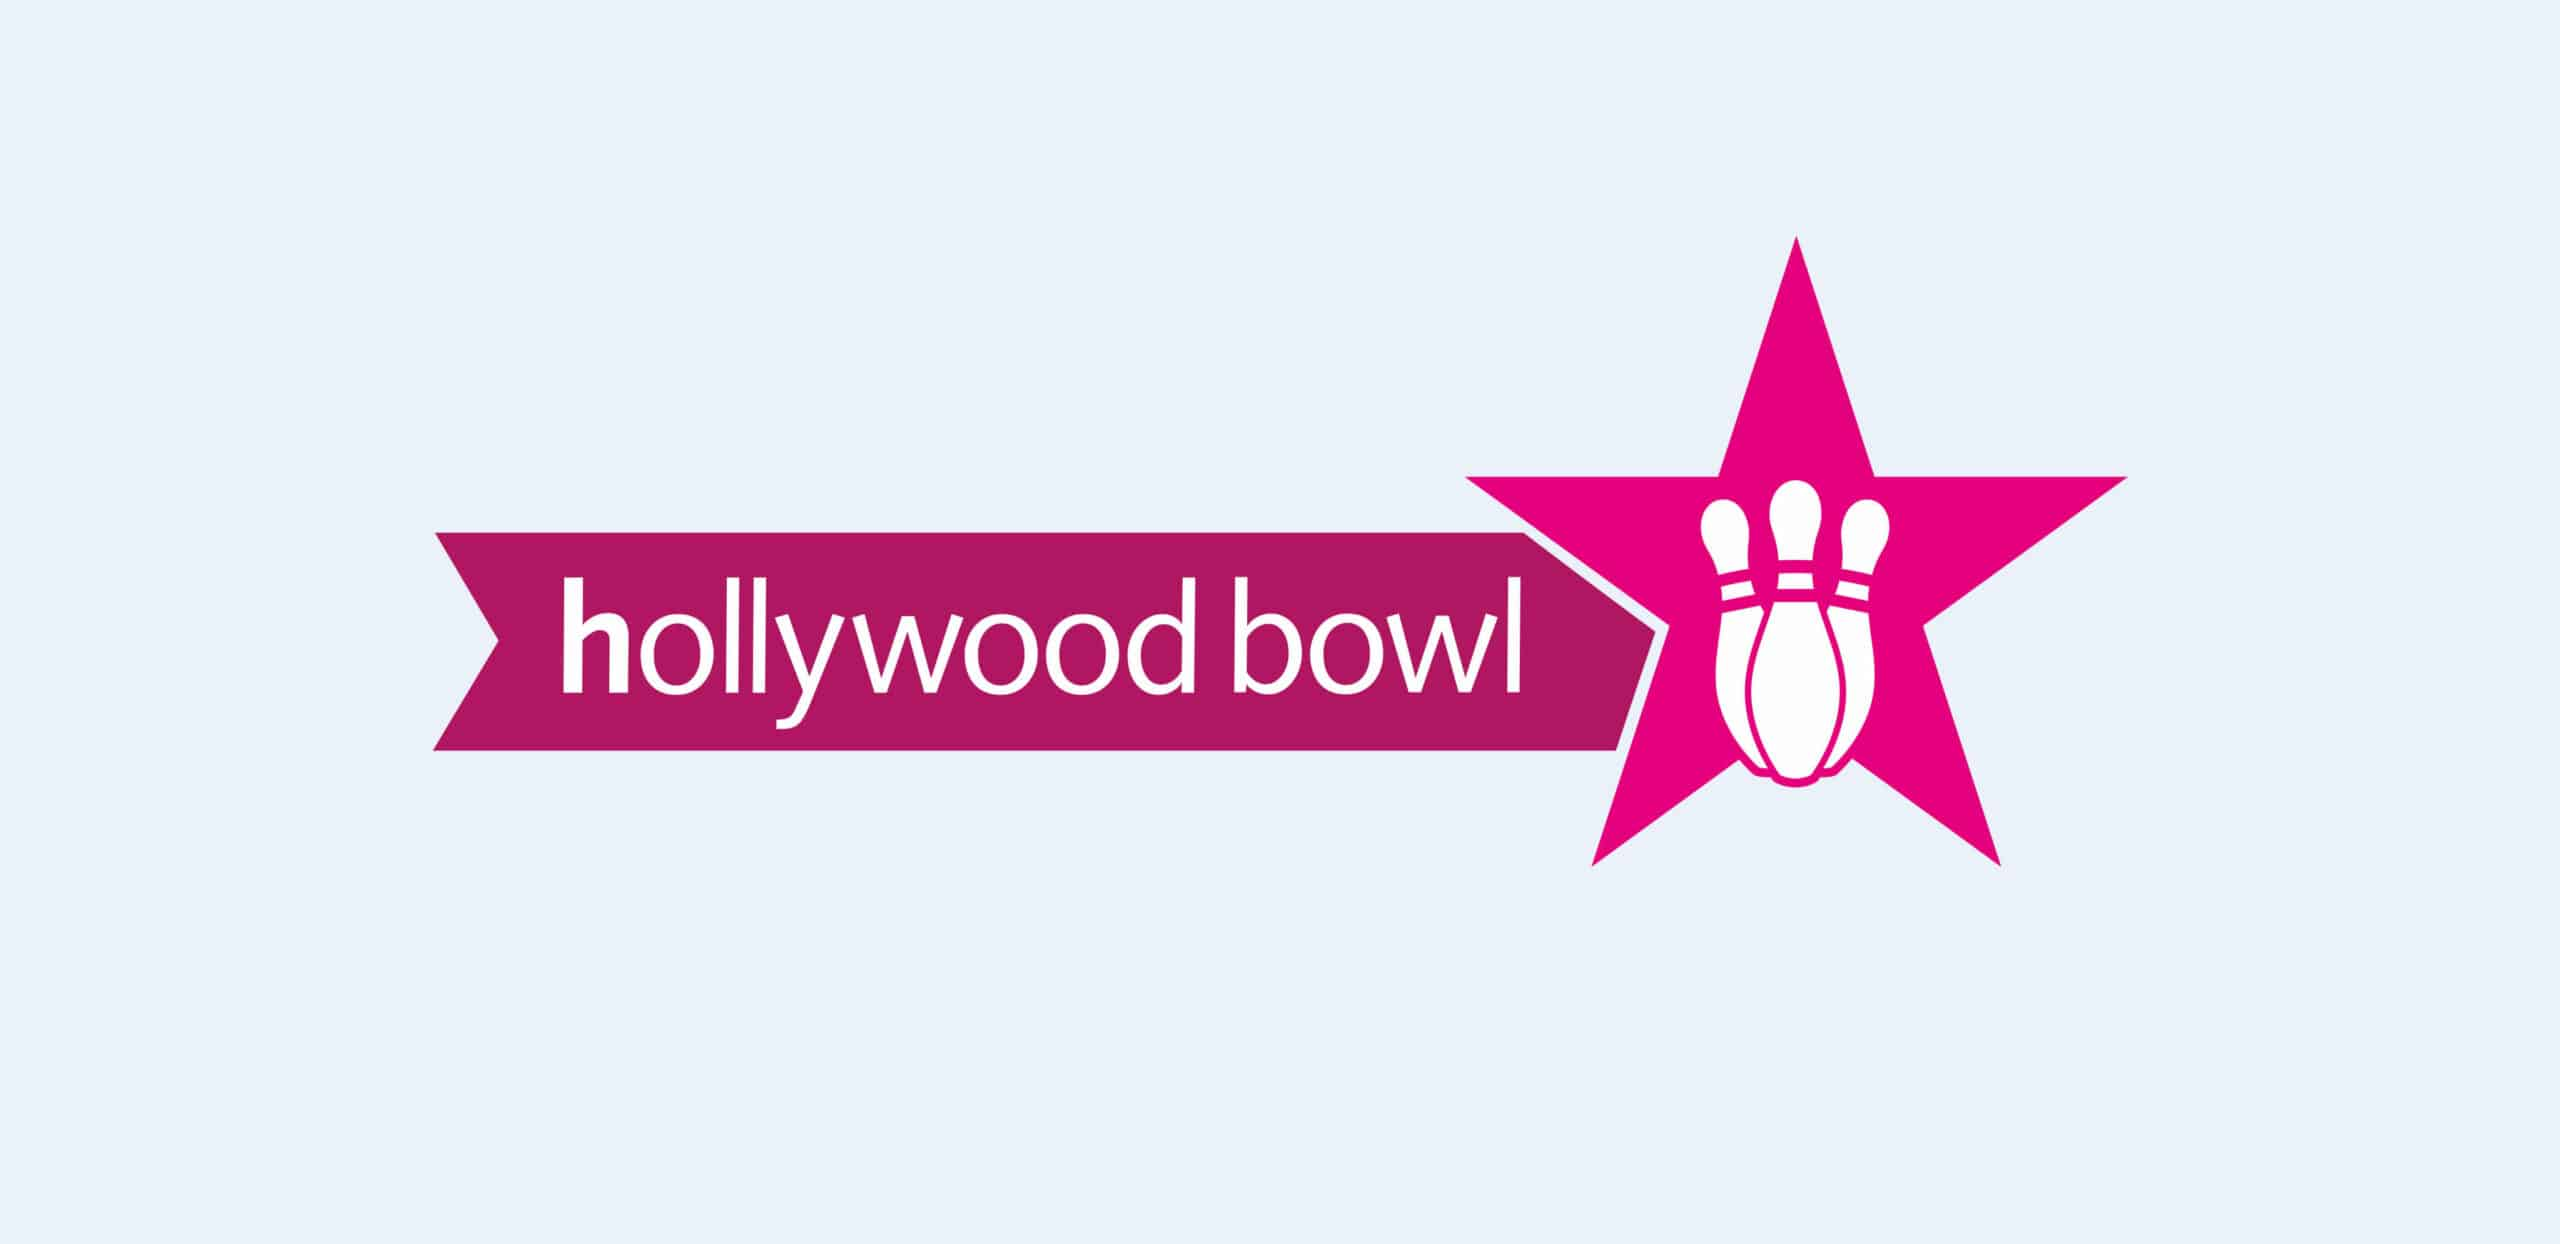 Hollywood Bowl New Brand